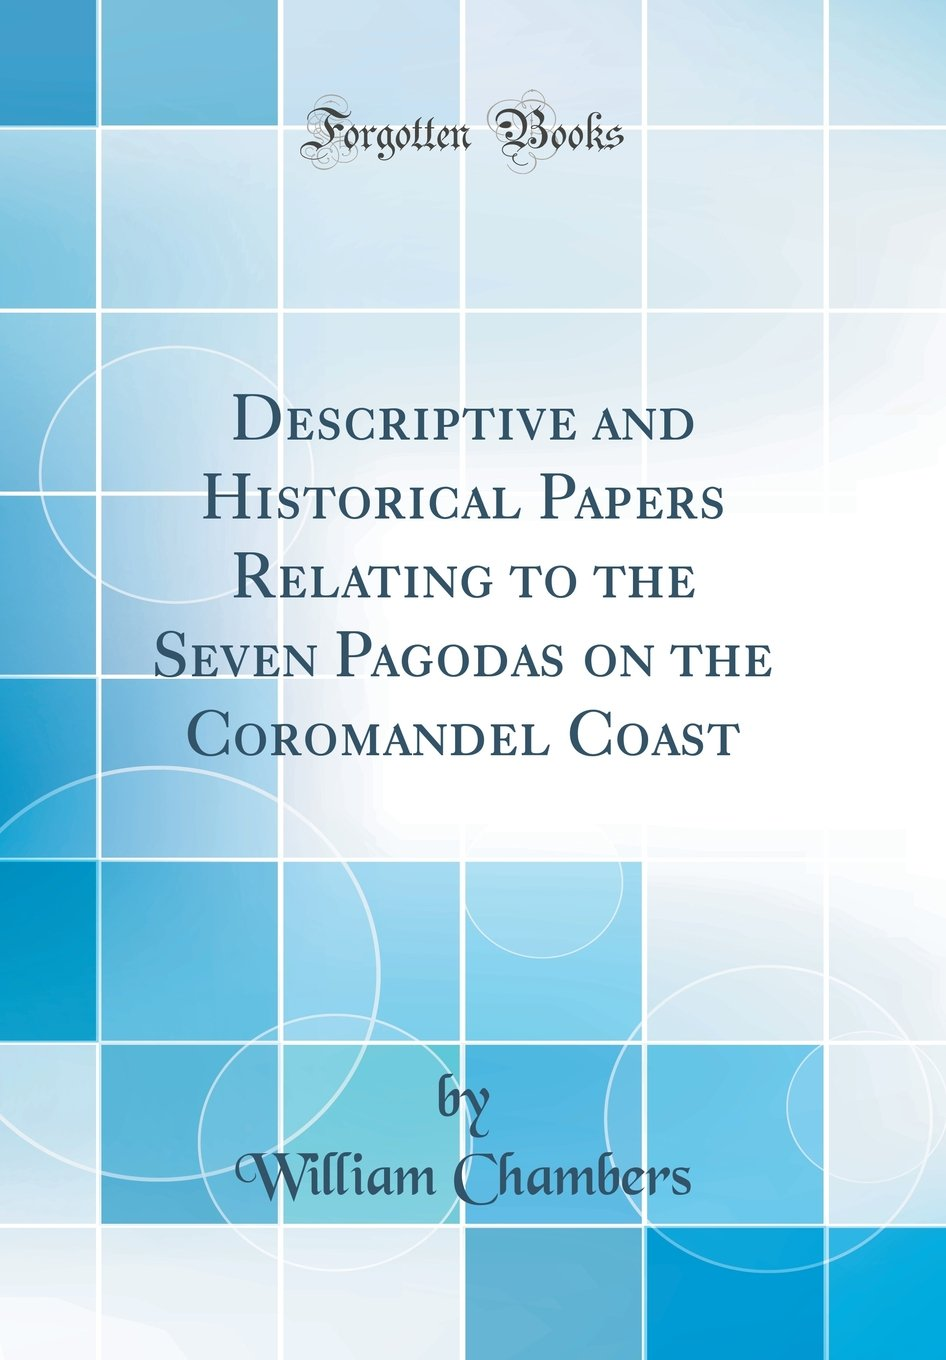 Read Online Descriptive and Historical Papers Relating to the Seven Pagodas on the Coromandel Coast (Classic Reprint) ebook